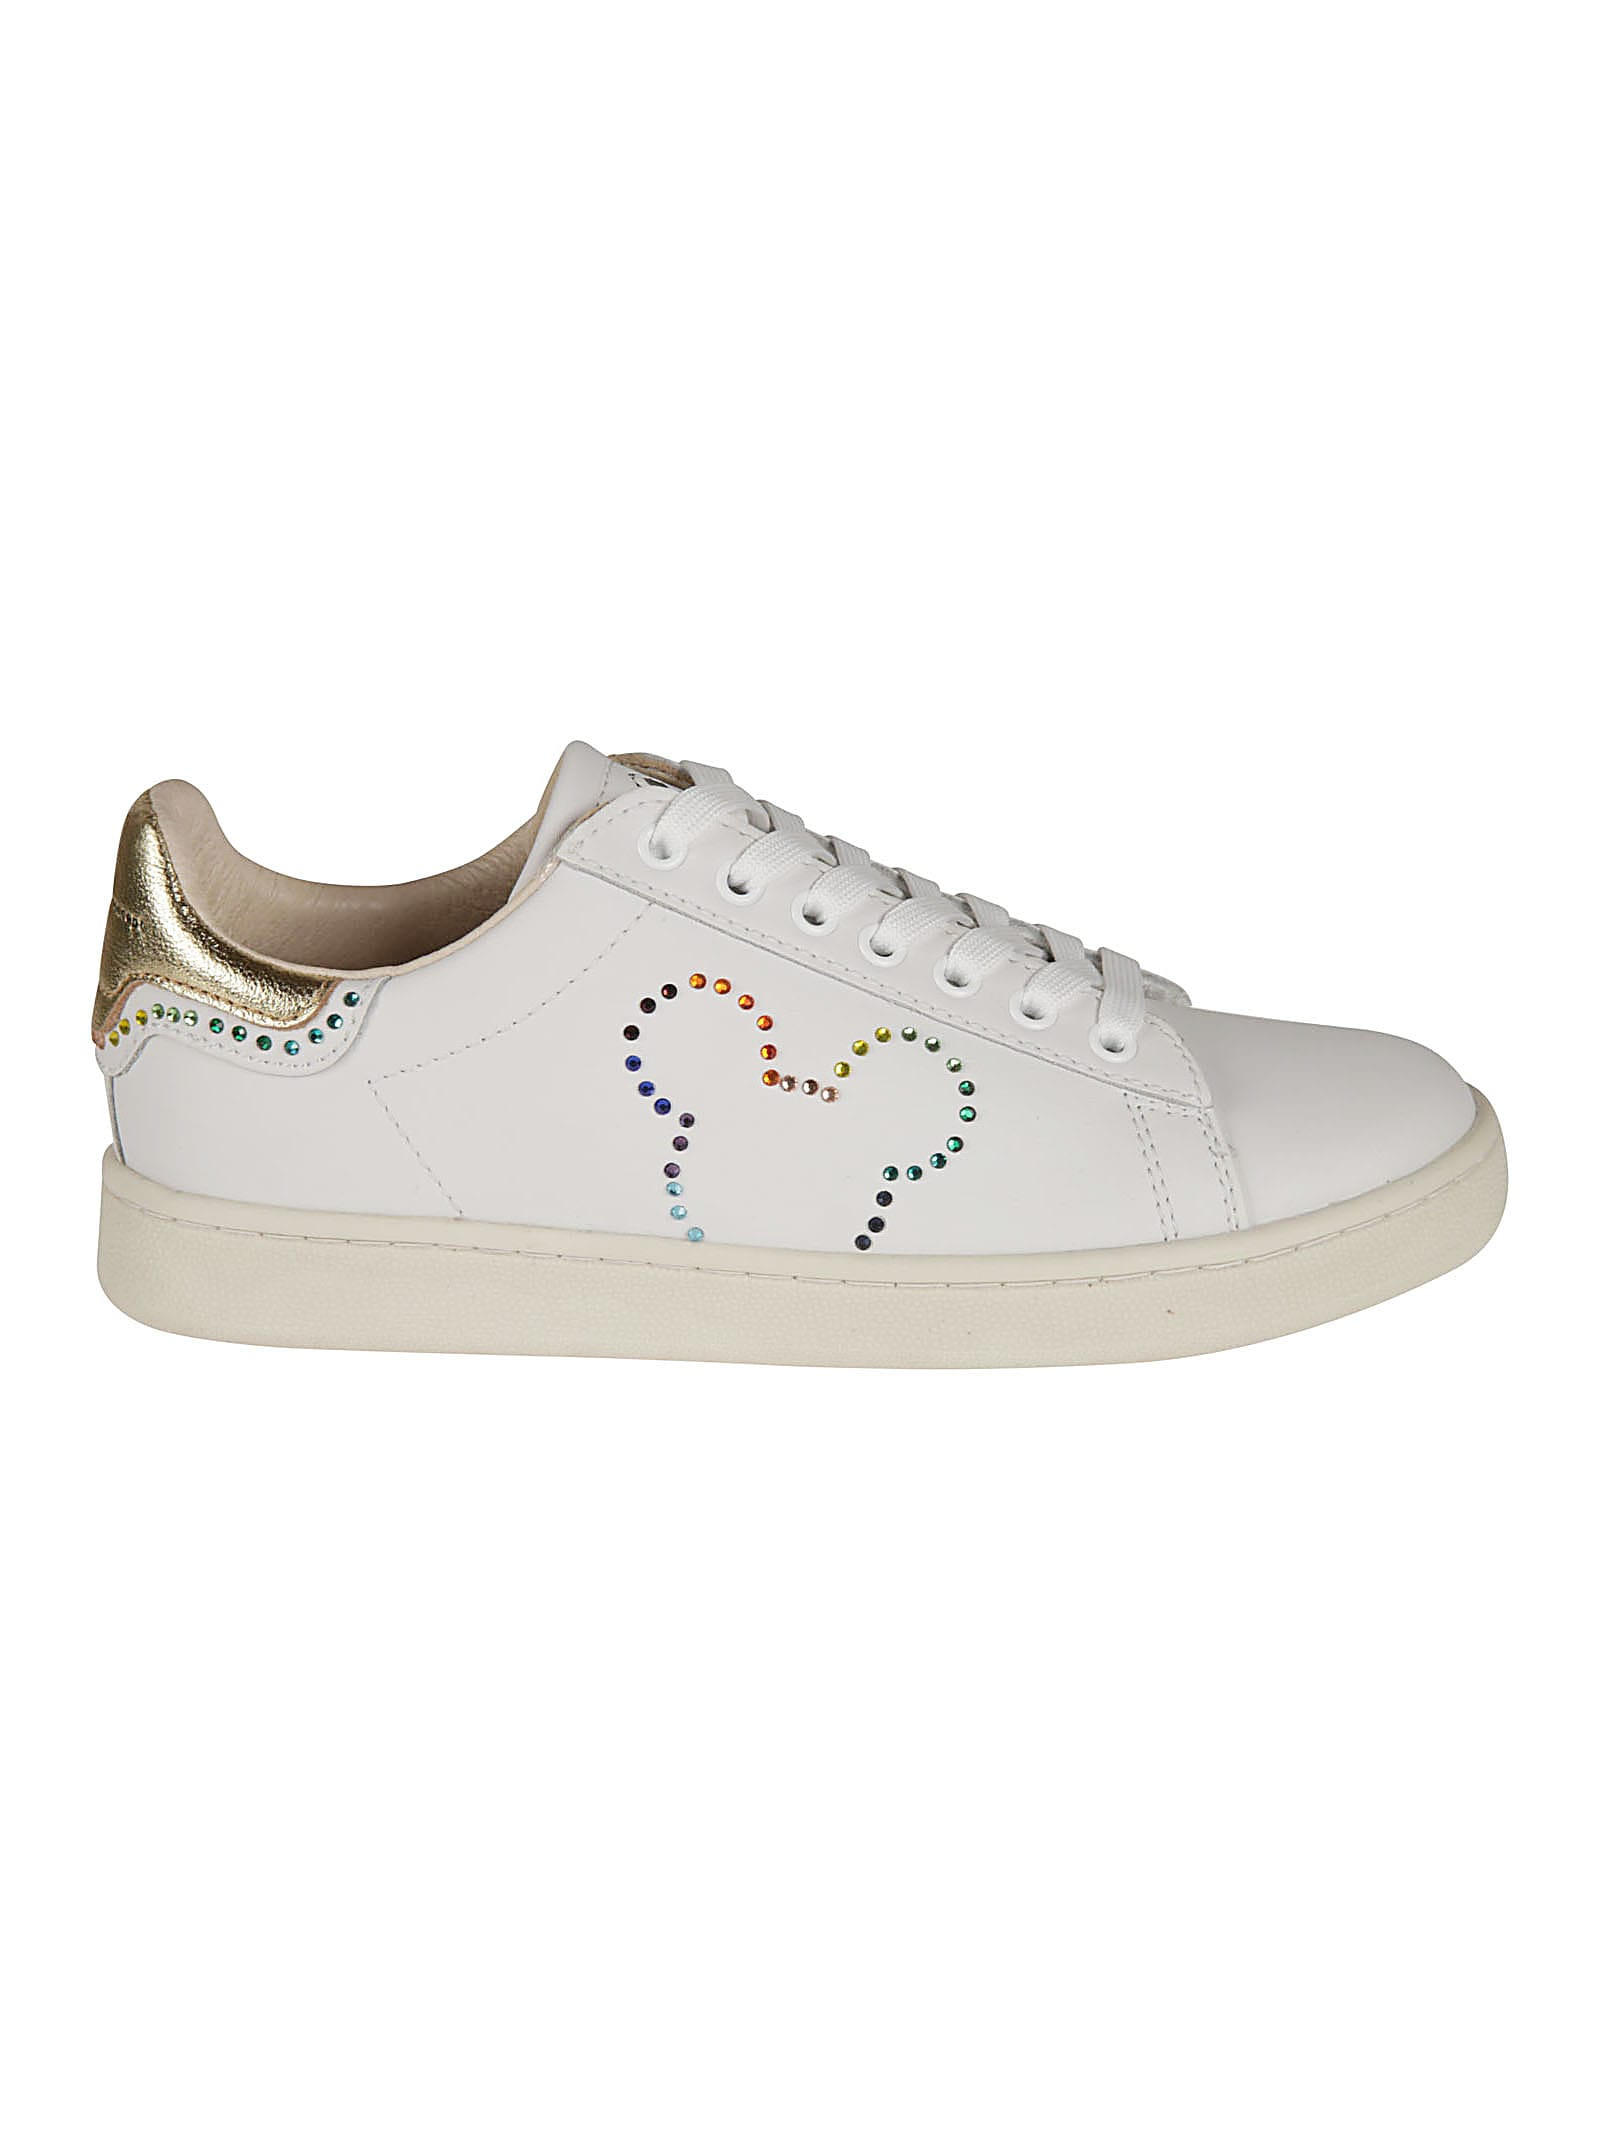 Moa Master Of Arts RAINBOW STRASS MICKEY MOUSE GALLERY SNEAKERS